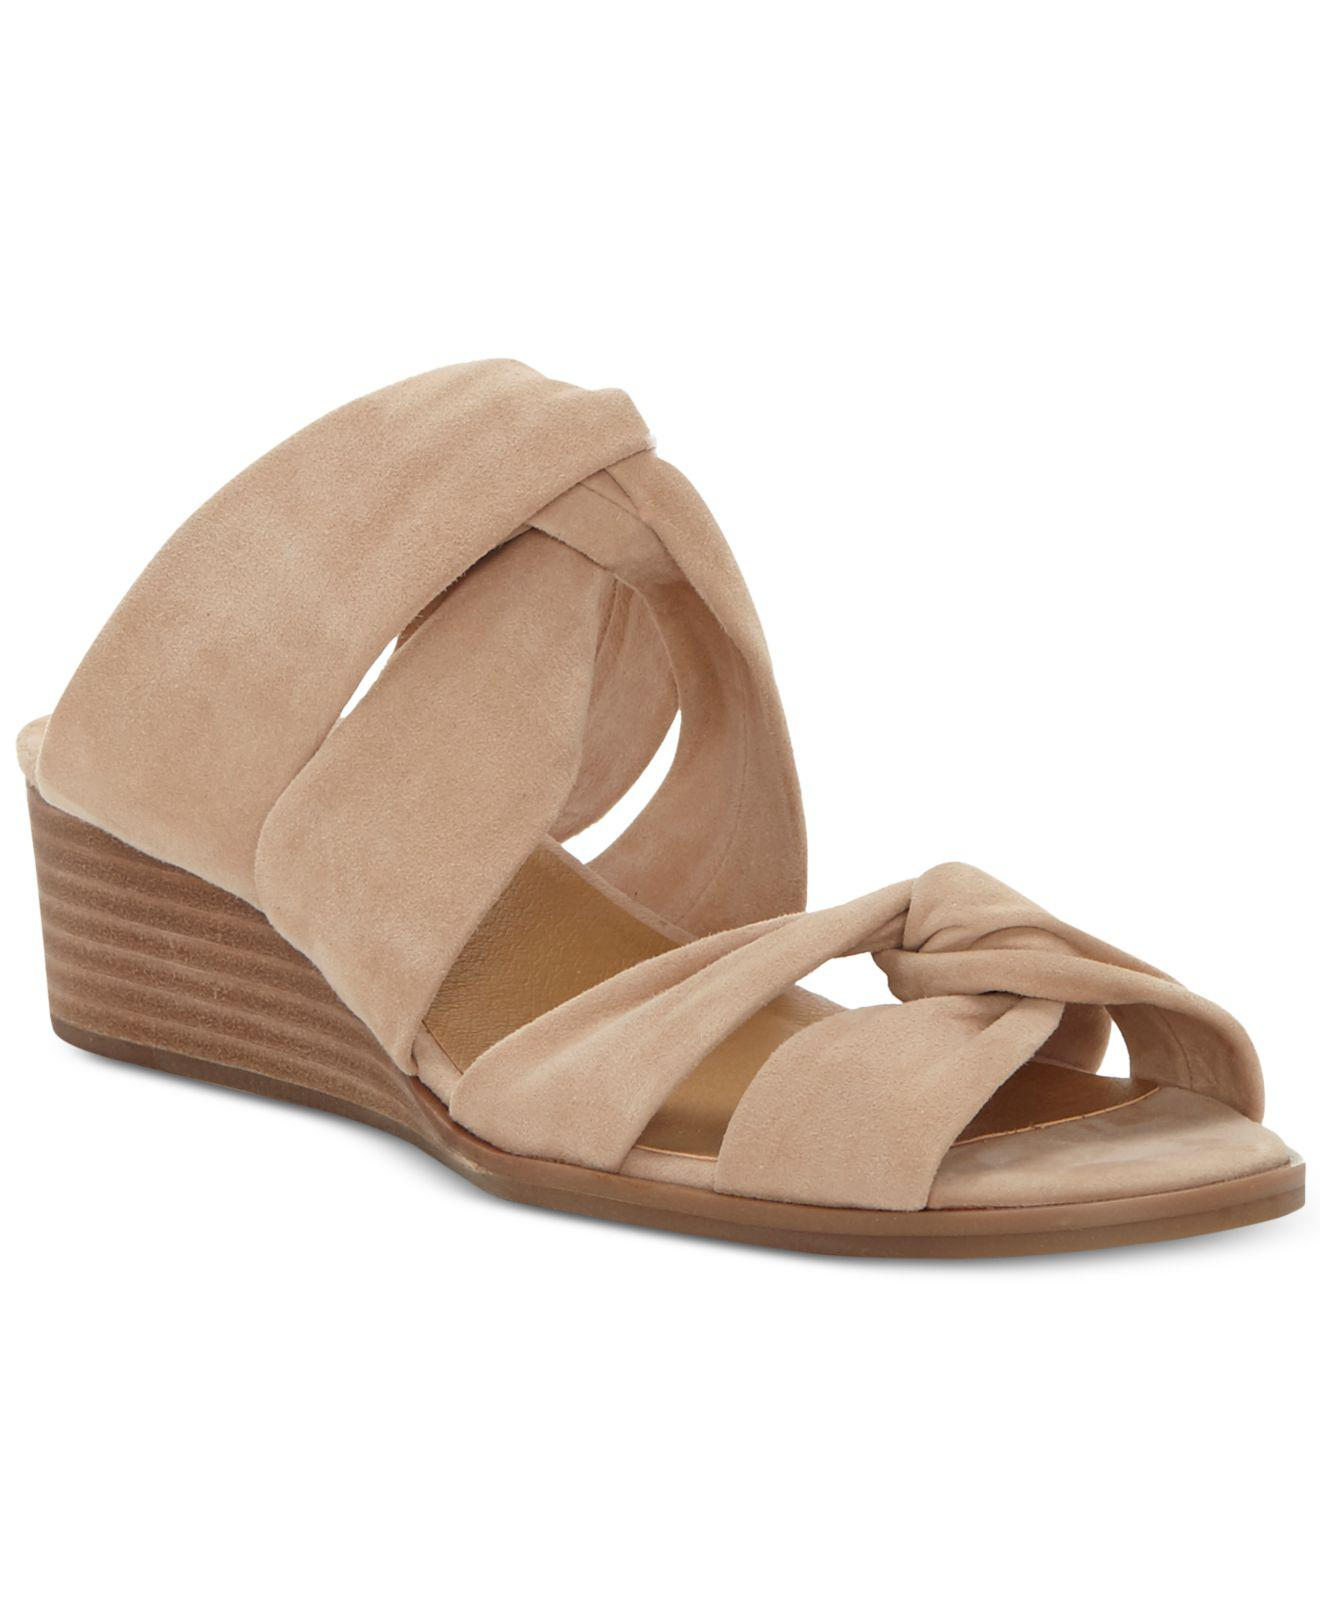 Lucky Brand Rhilley Suede Wedge Sandals